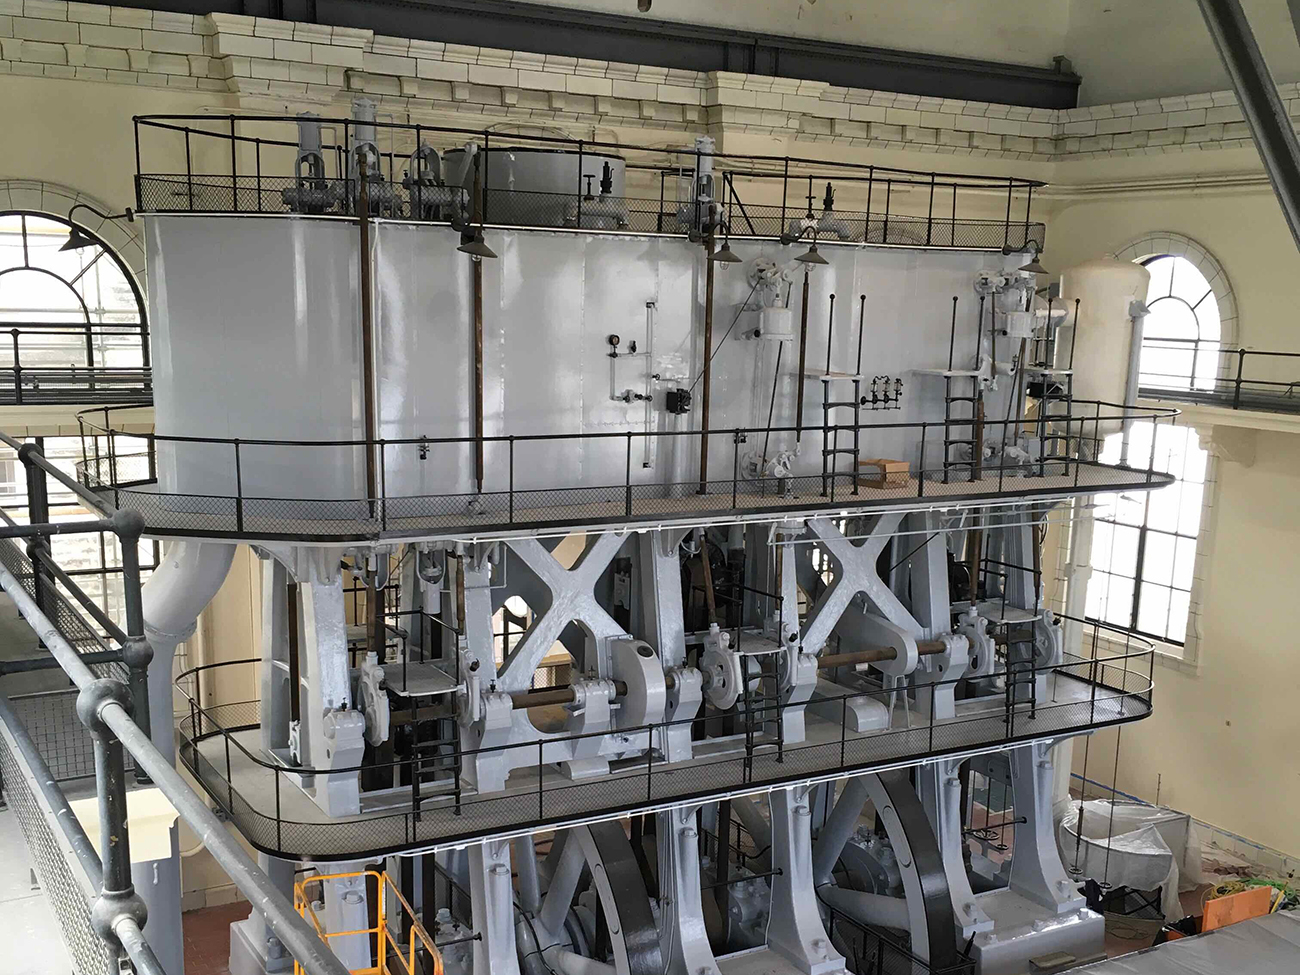 Interior of steam pumps at Louisville Pumping Station